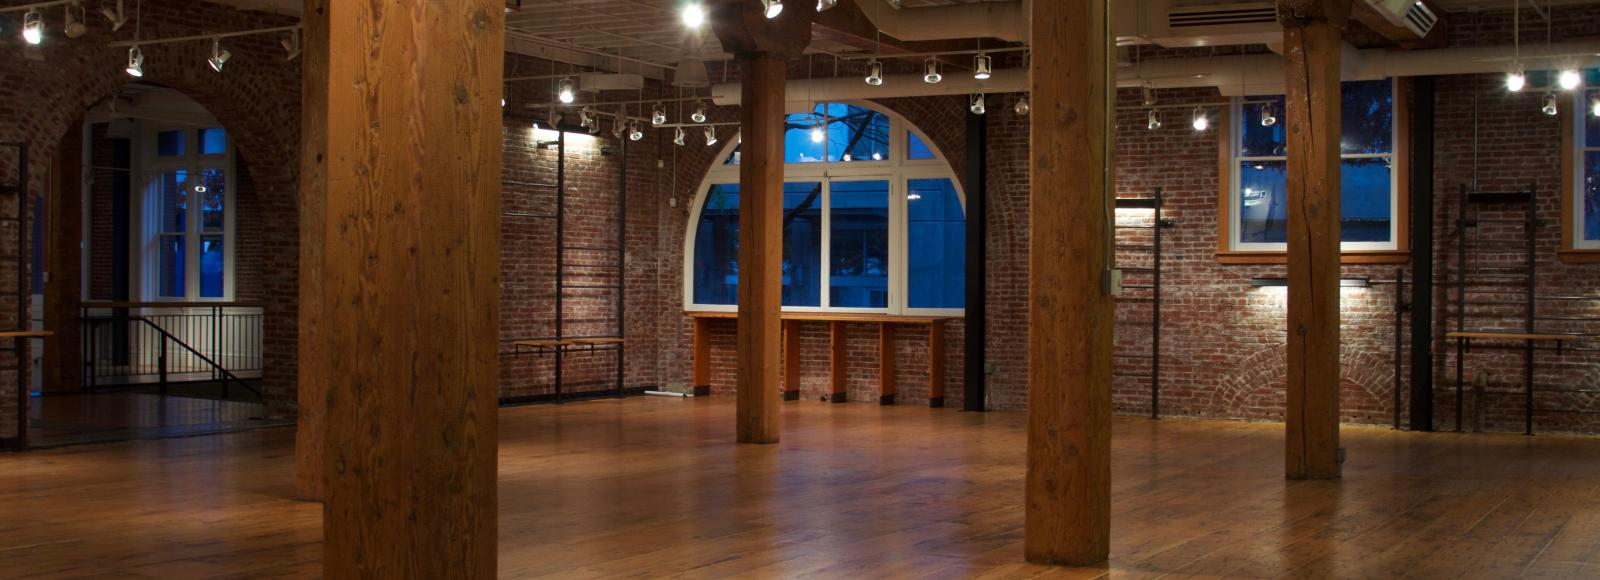 empty Irving Street Studio event space with brick walls, arched windows, and doug-fir columns